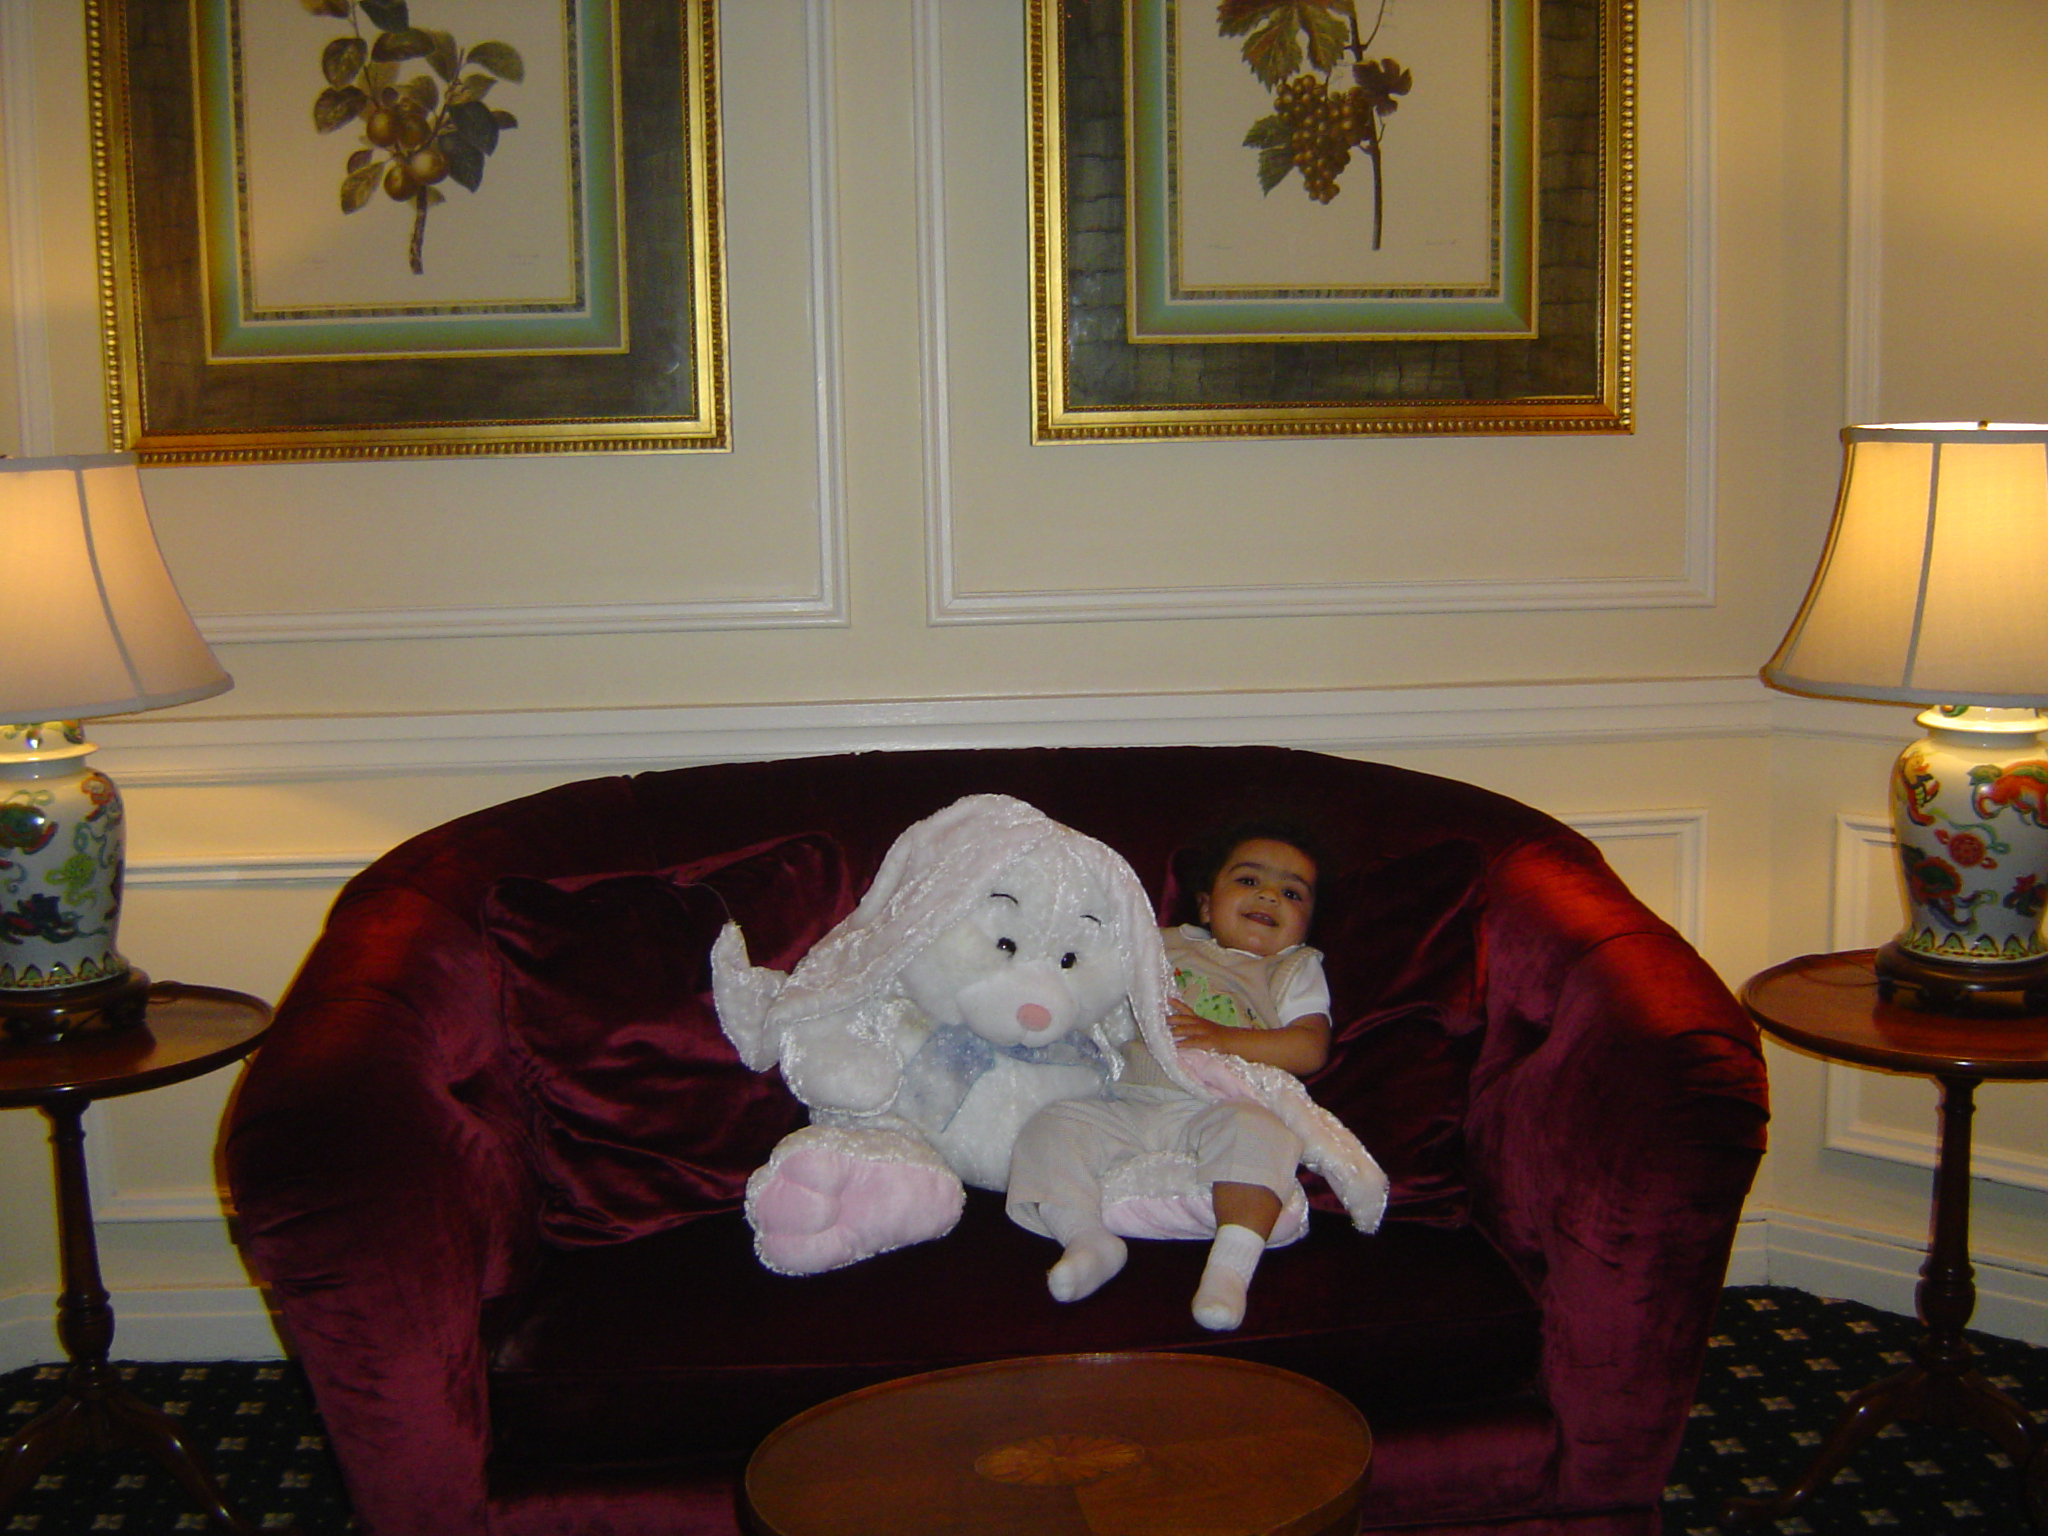 Alexander hanging with the Easter bunny at the Trenton Country Club (2008)